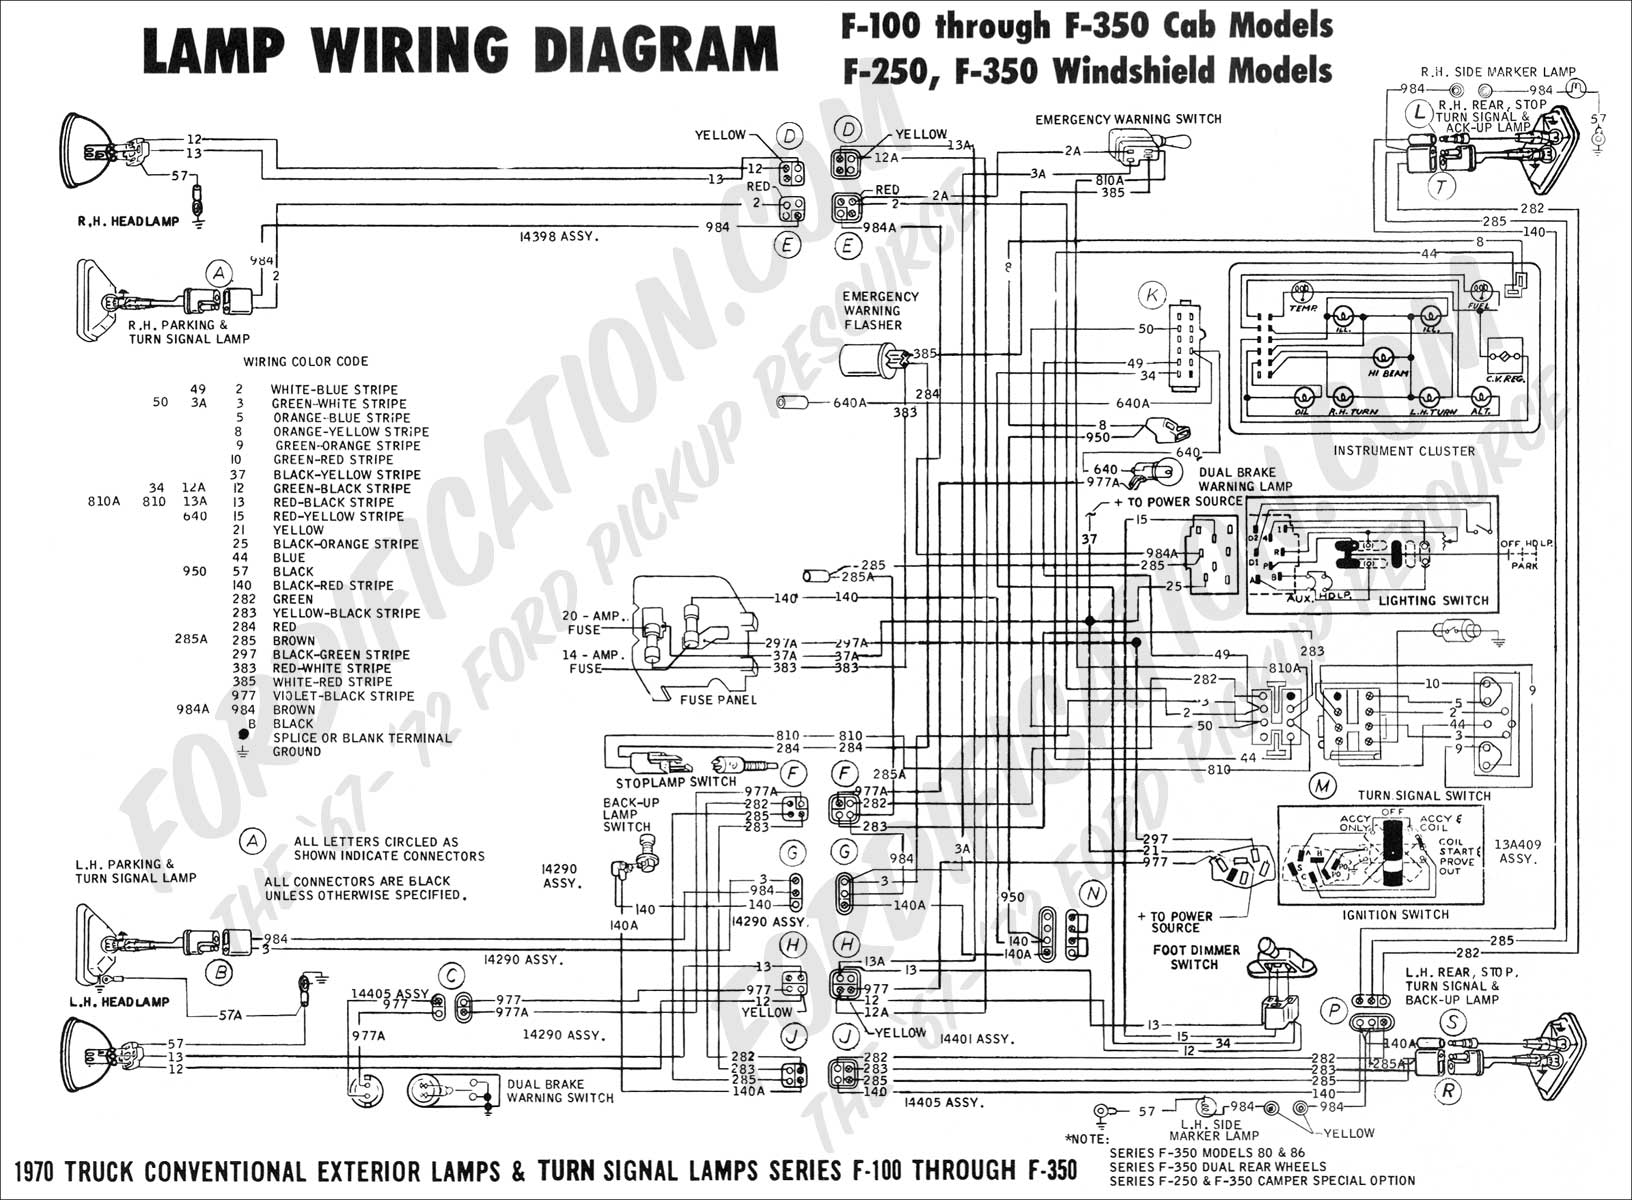 wiring diagram_70ext lights01 ford truck technical drawings and schematics section h wiring 1970 ford wiring diagram at readyjetset.co